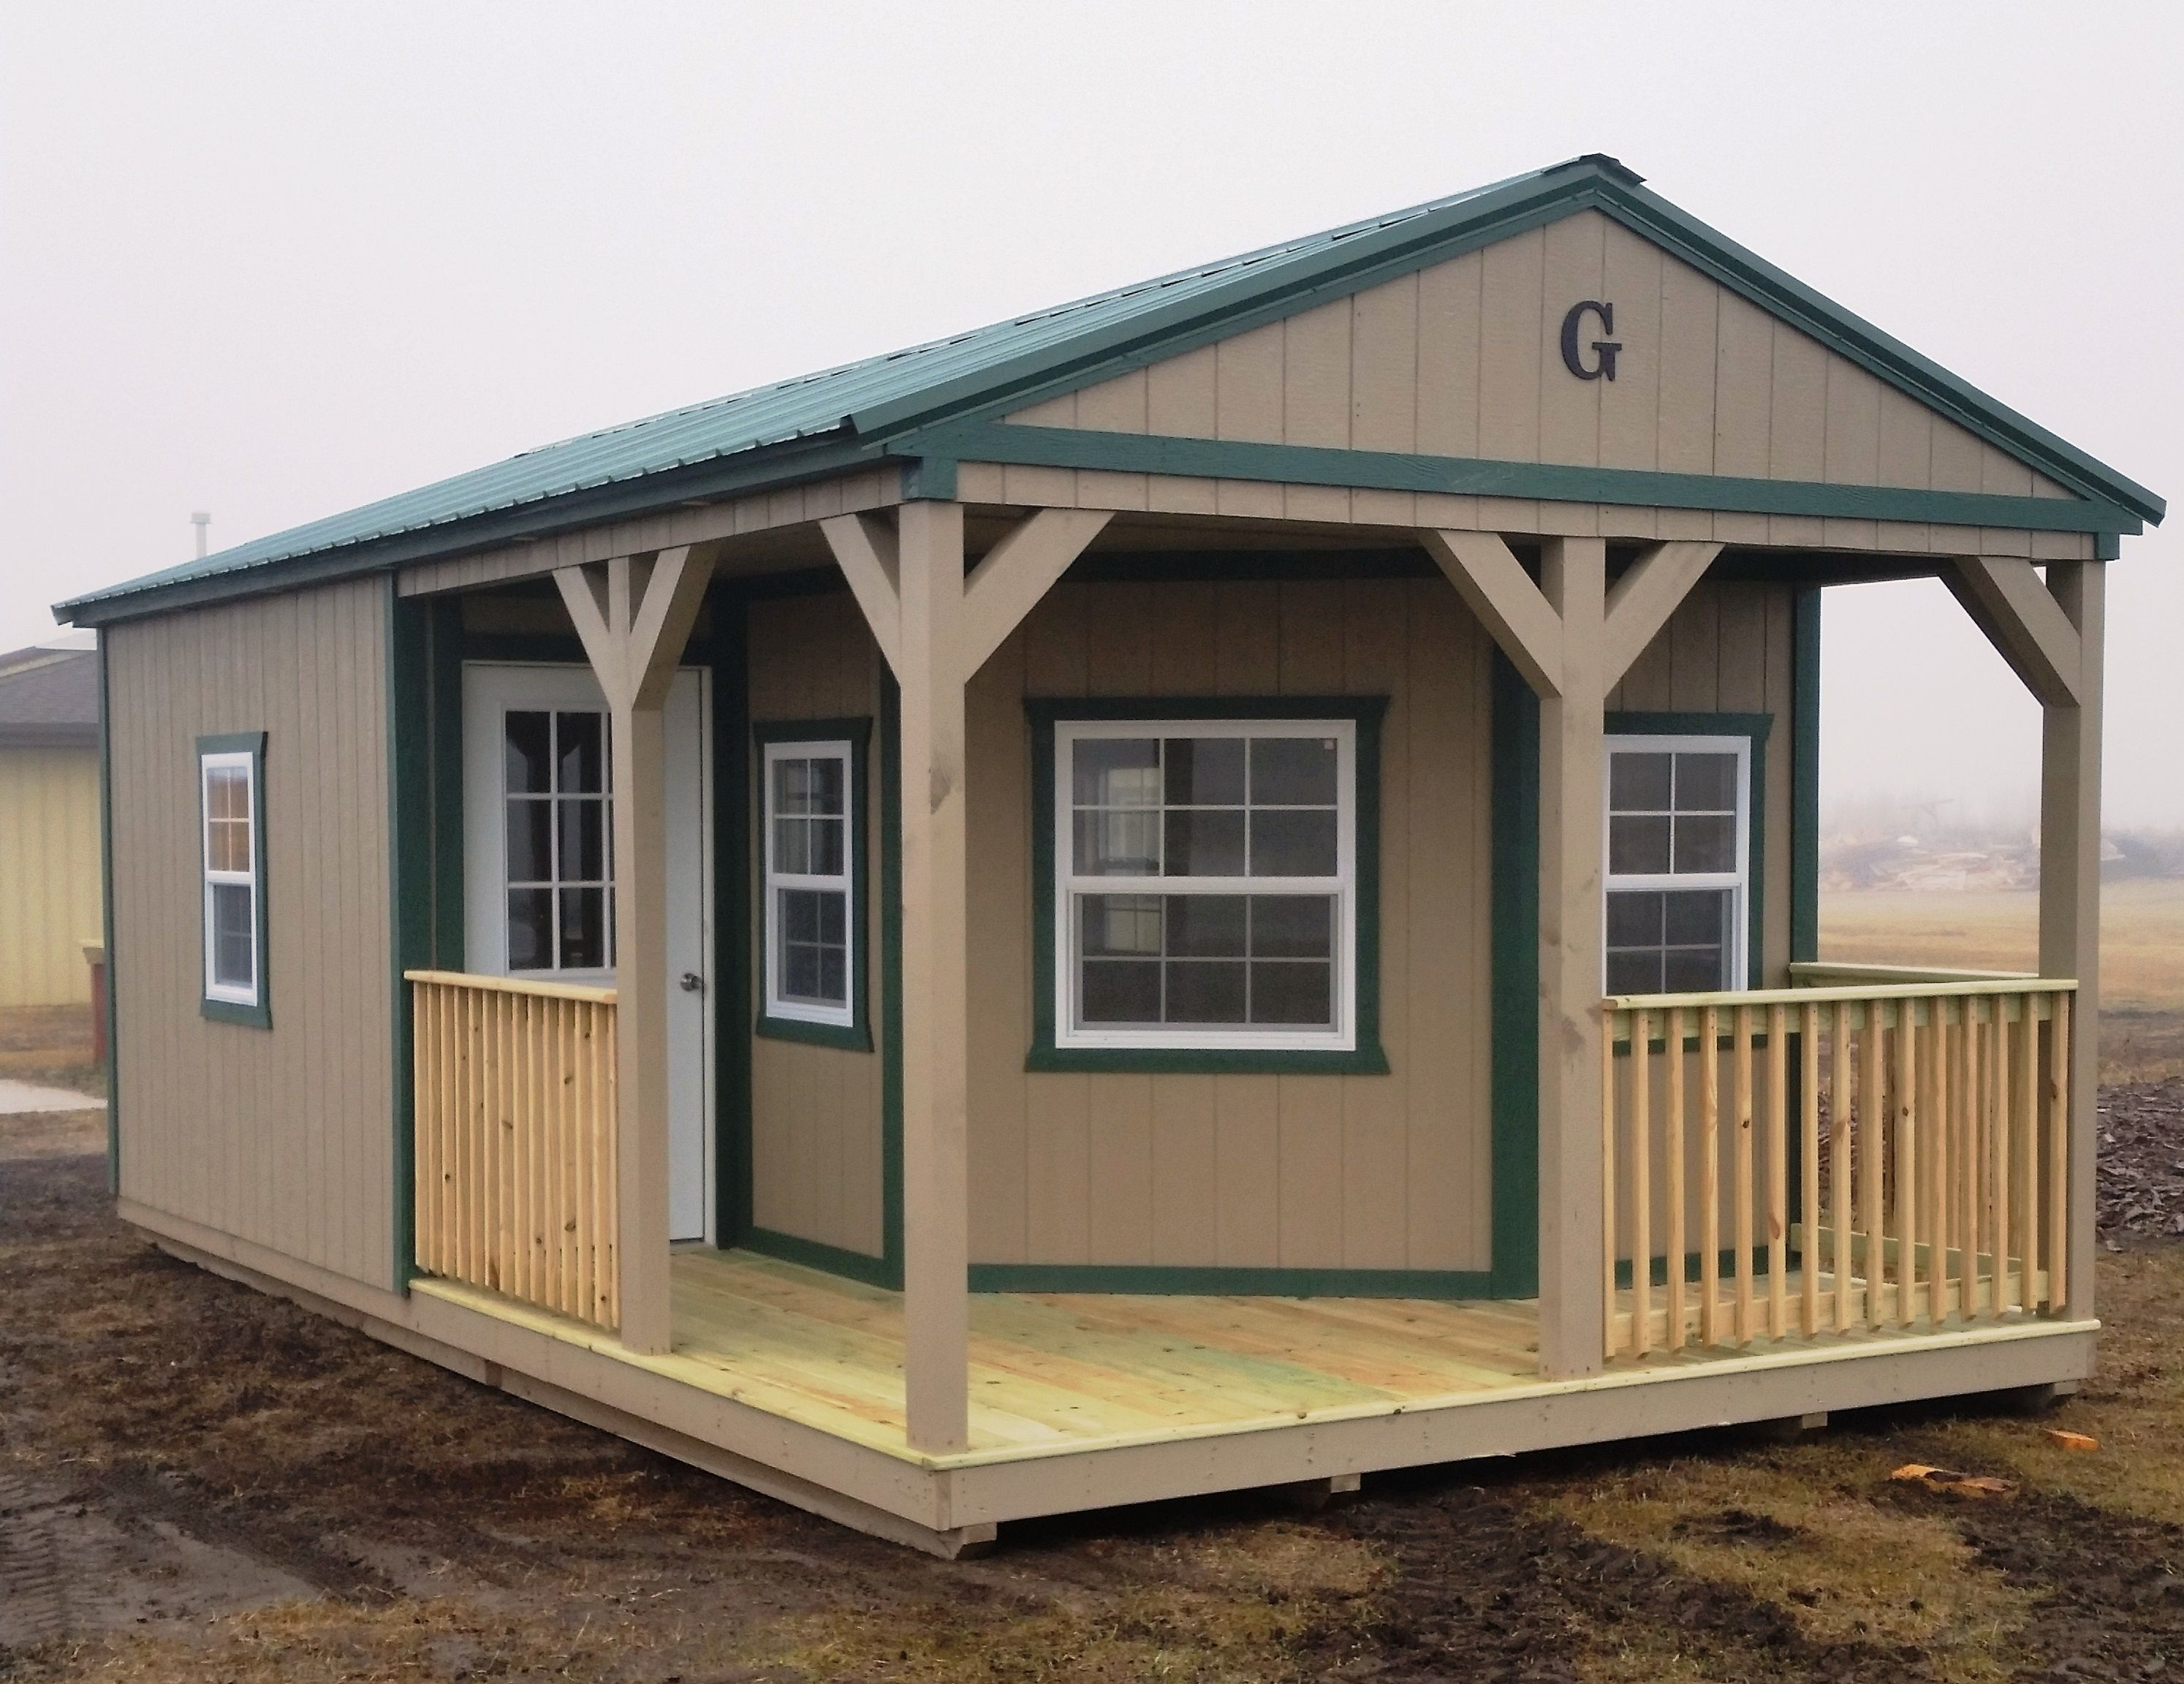 14x24 Cabin With L Shaped Porch And Railings Green Metal Roof With Matching Trim Lp Smartside Painted San Portable Buildings Metal Buildings Portable Sheds